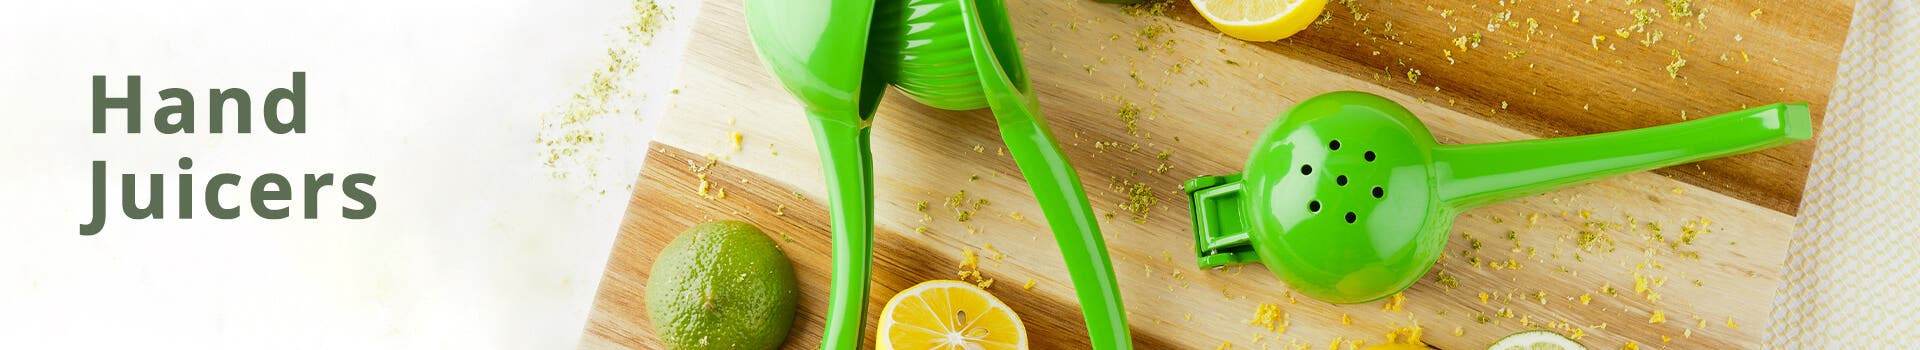 Lime Hand Juicers